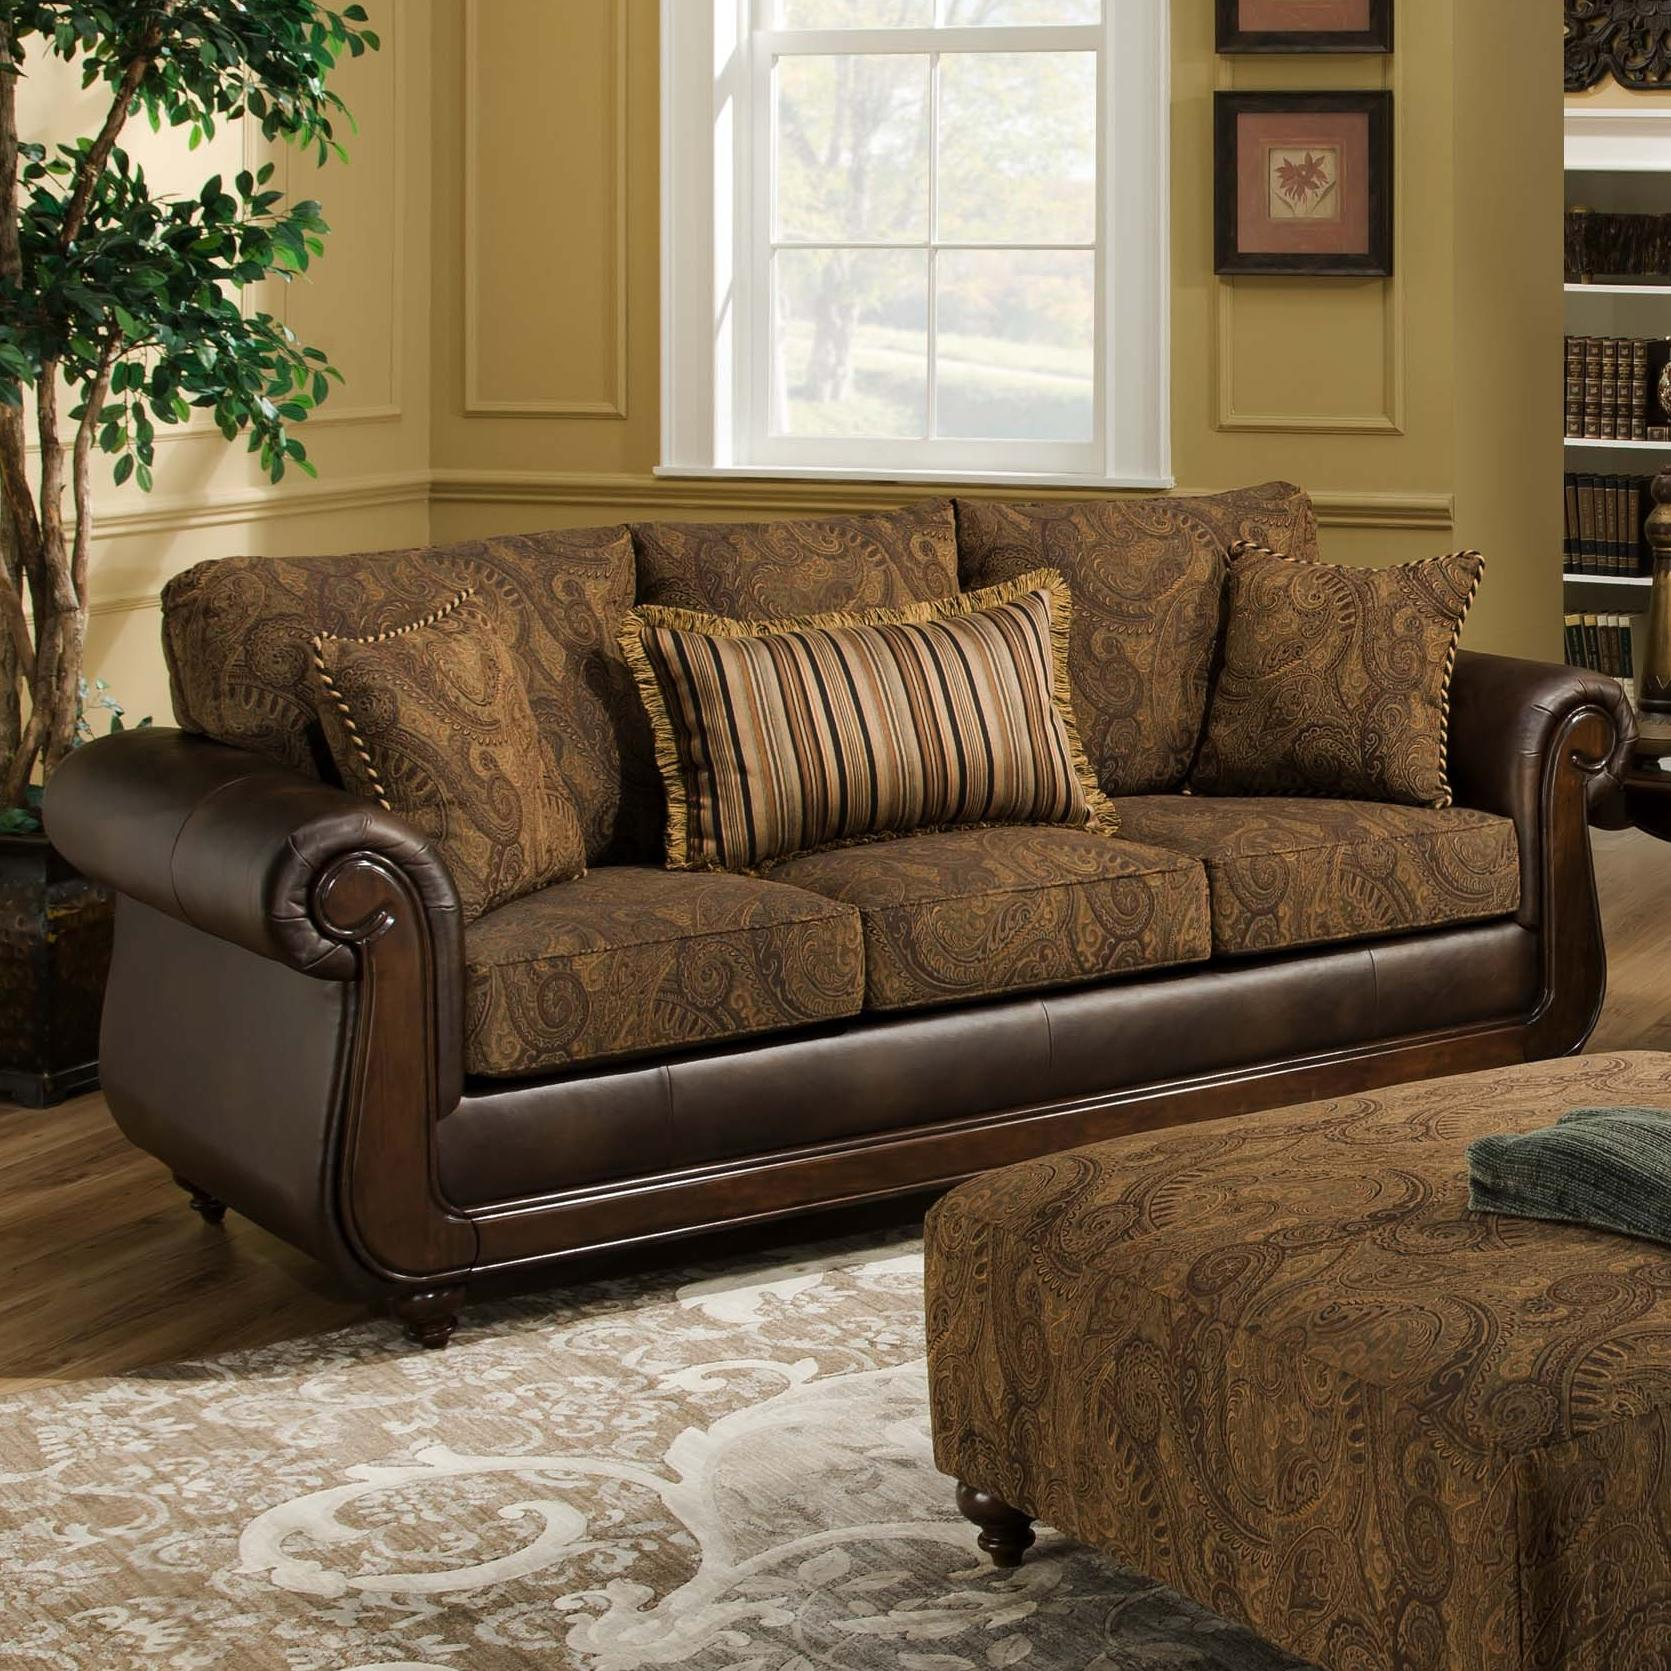 5850 Sofa with Exposed Wood by Peak Living at Prime Brothers Furniture